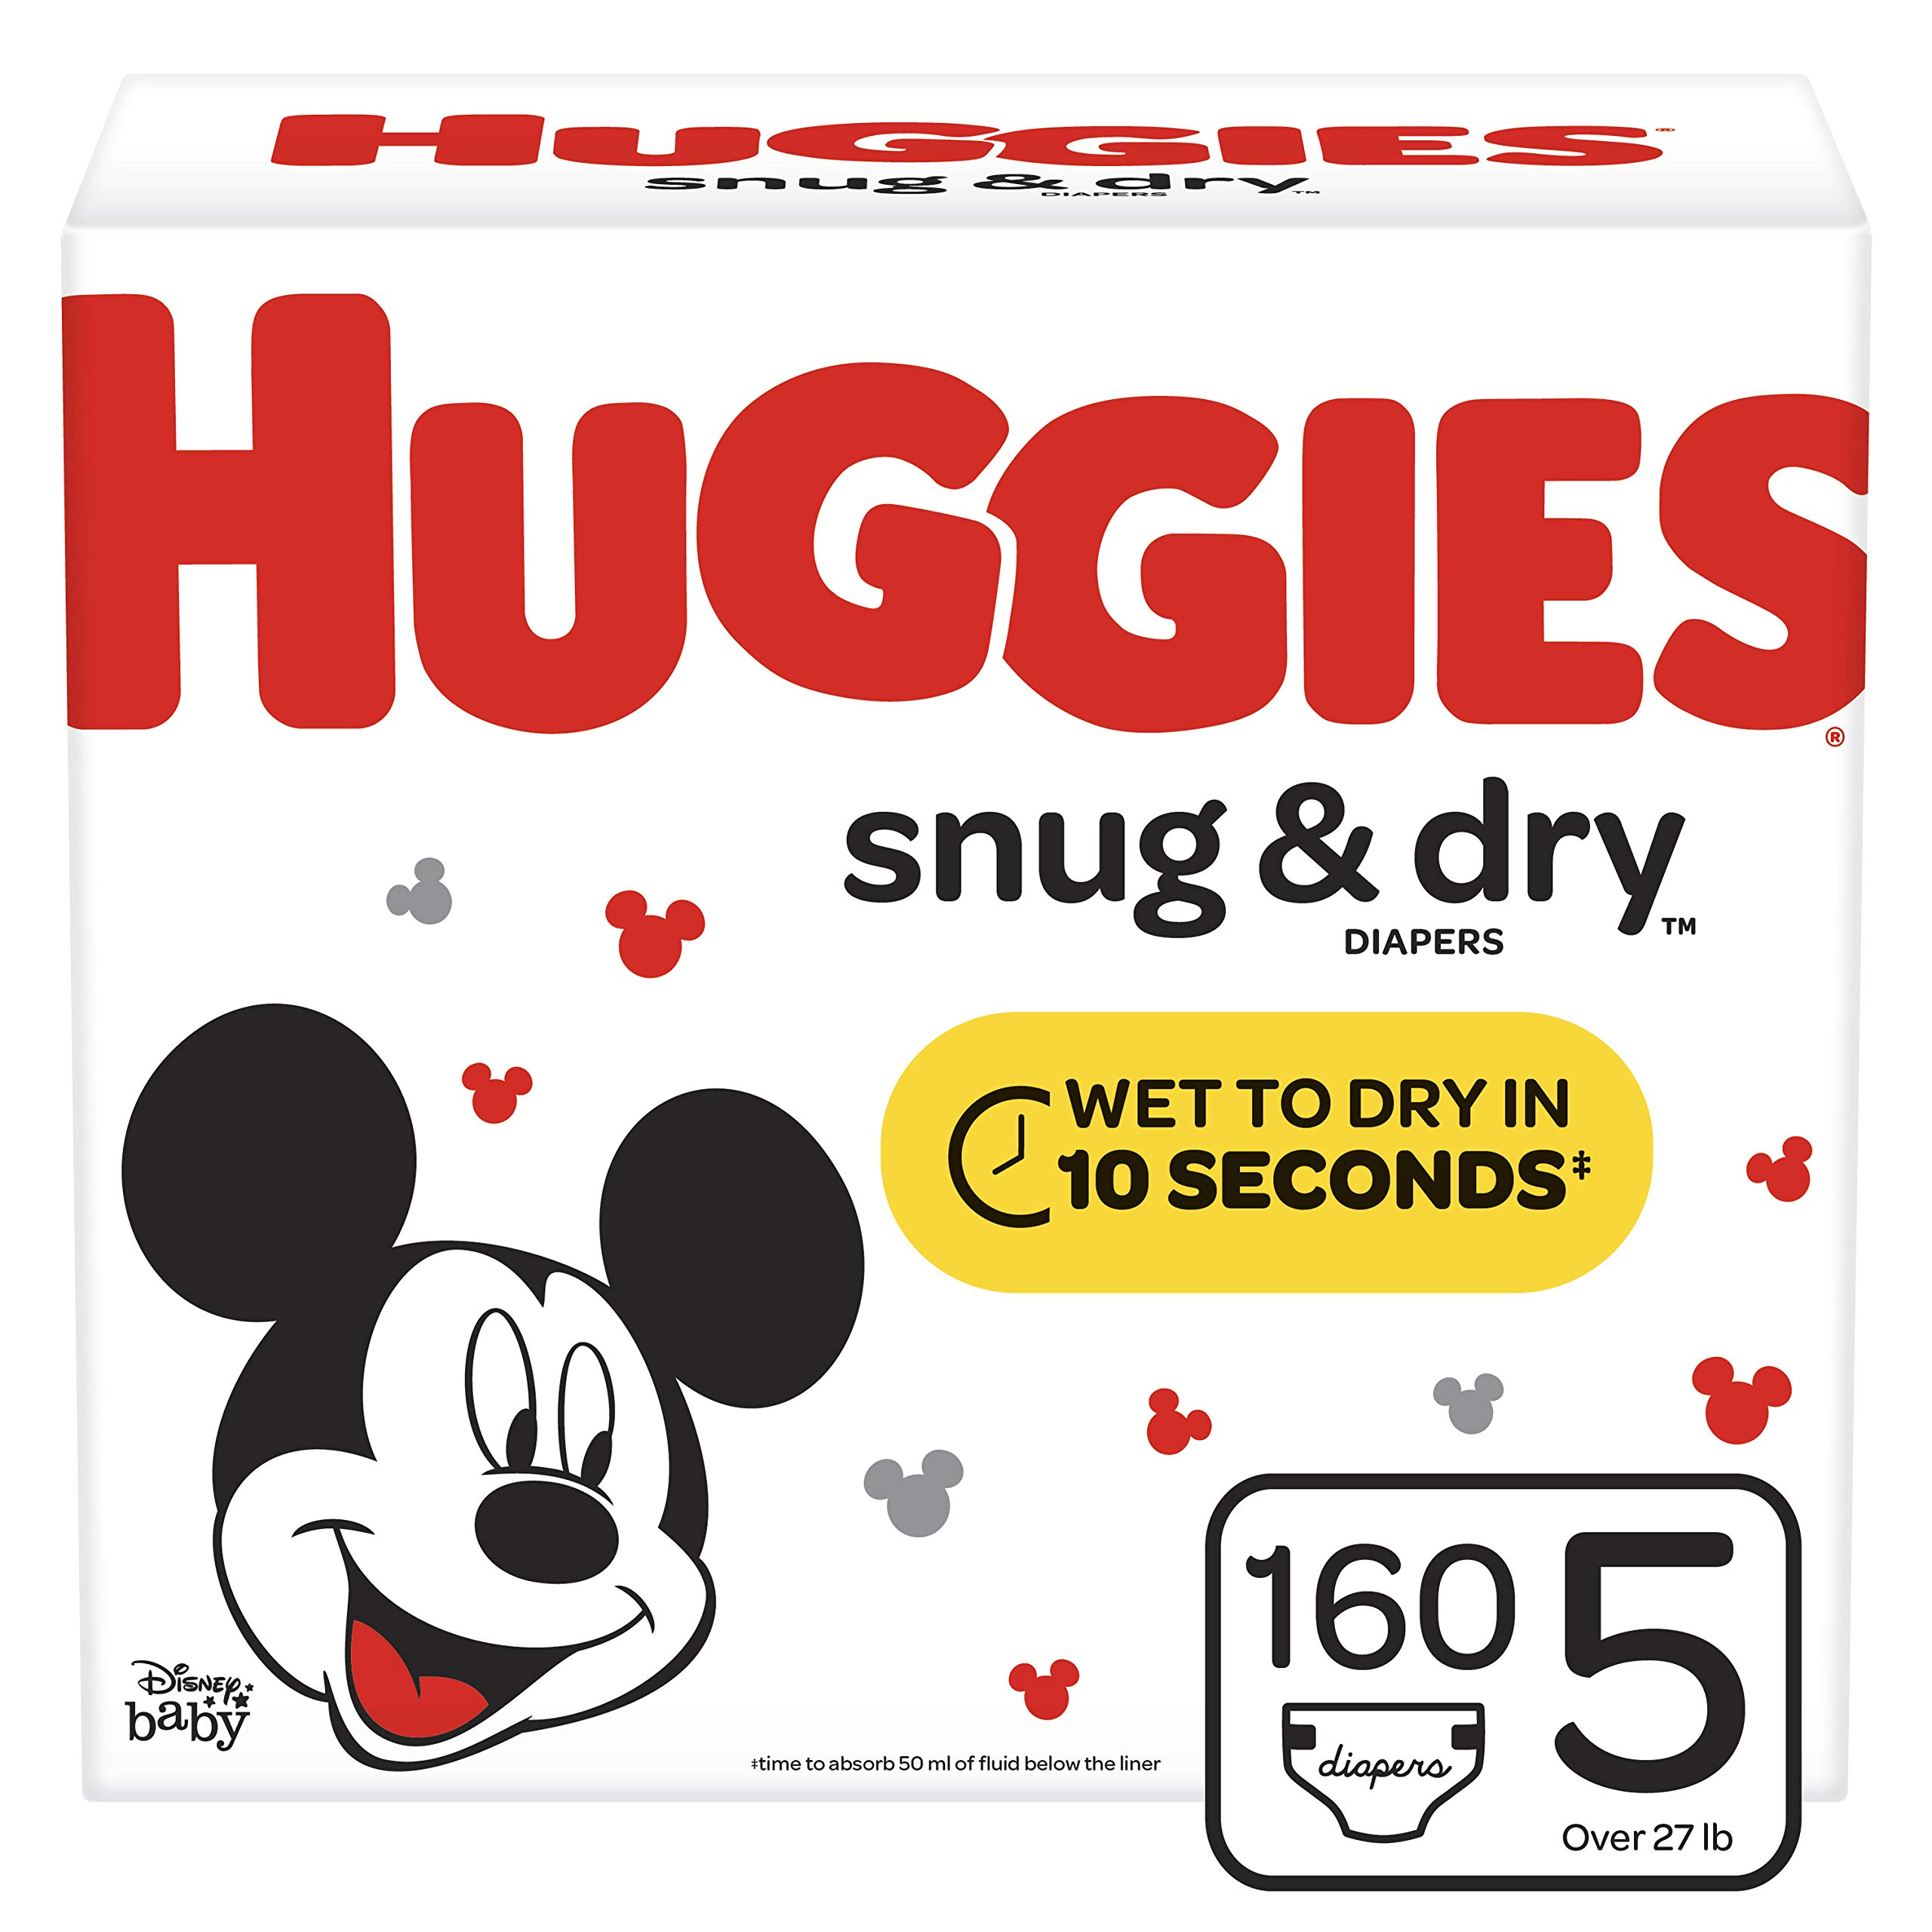 Huggies Snug & Dry Baby Diapers, Size 5 (fits 27+ lb.), 160 Count, ONE Month Supply (Packaging May Vary) by Huggies